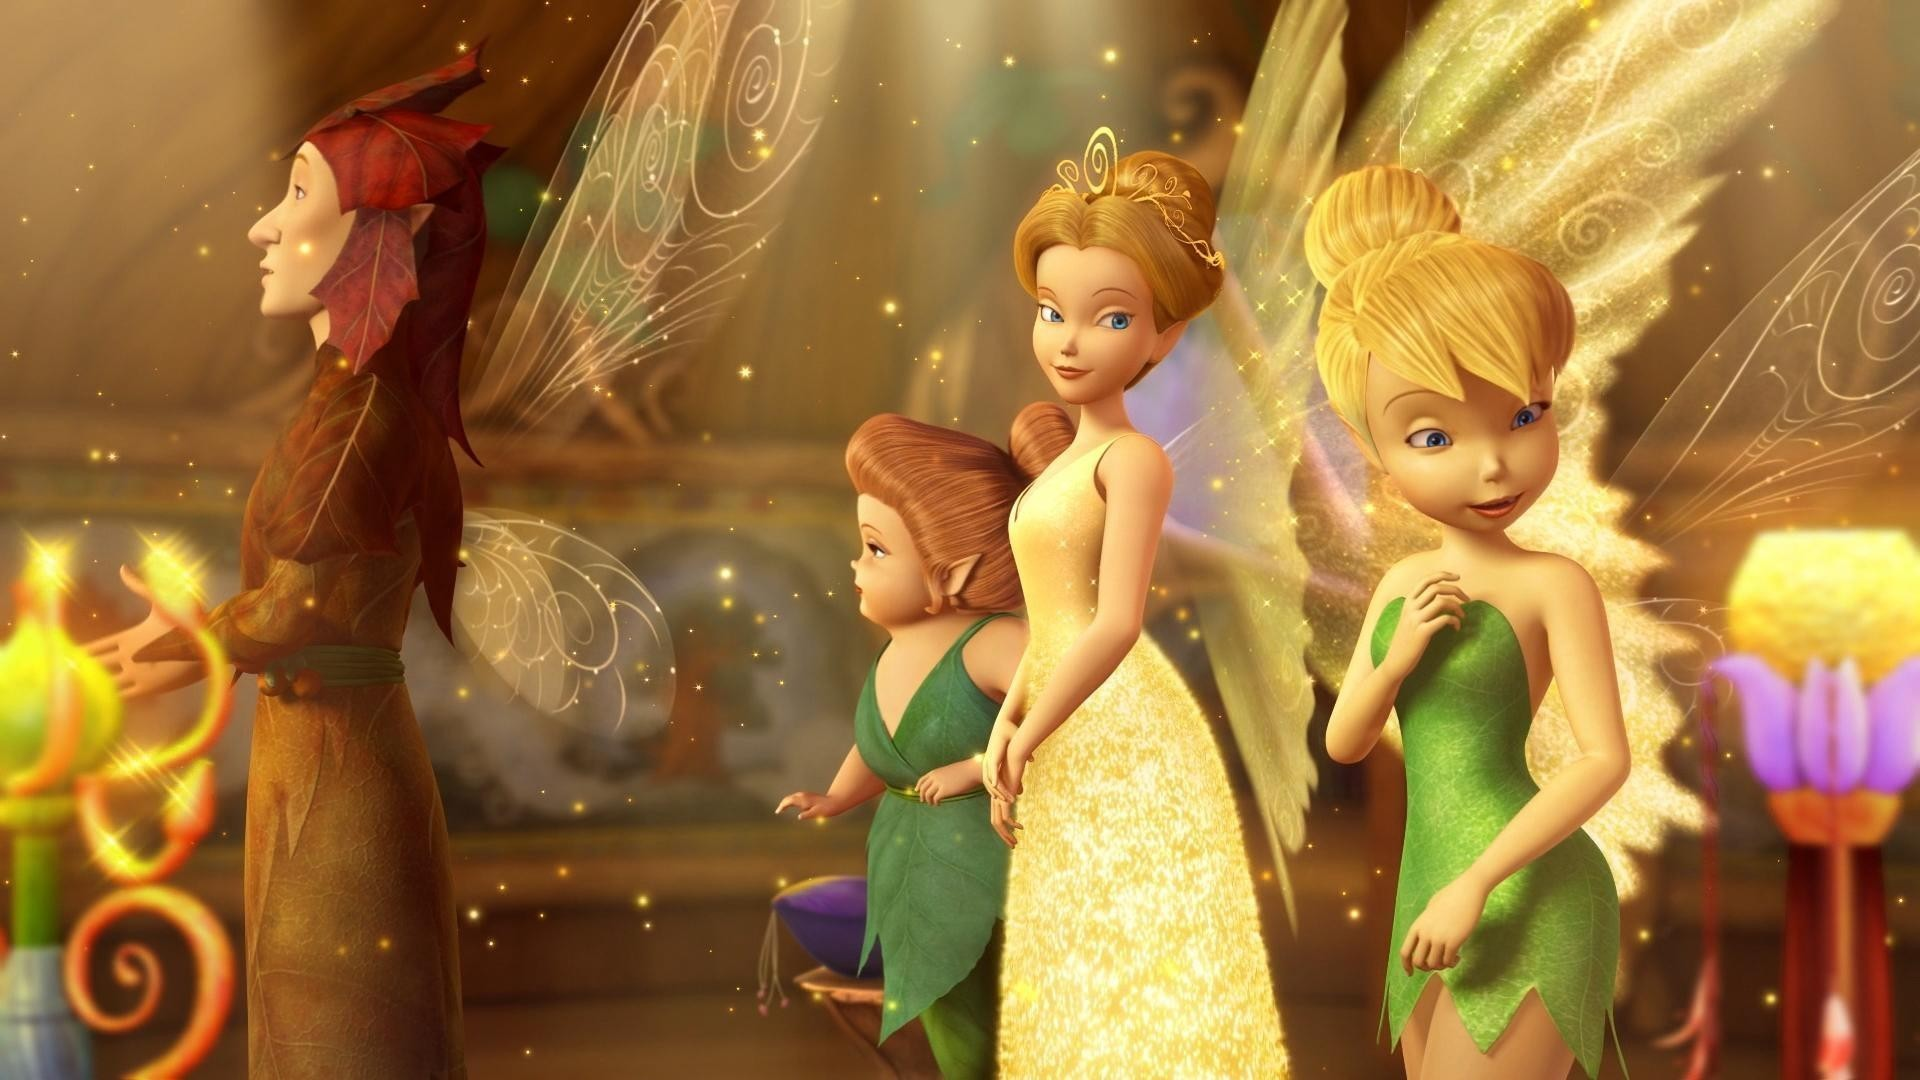 1920x1080 Tinker Bell and the Lost Treasure Wallpaper 2